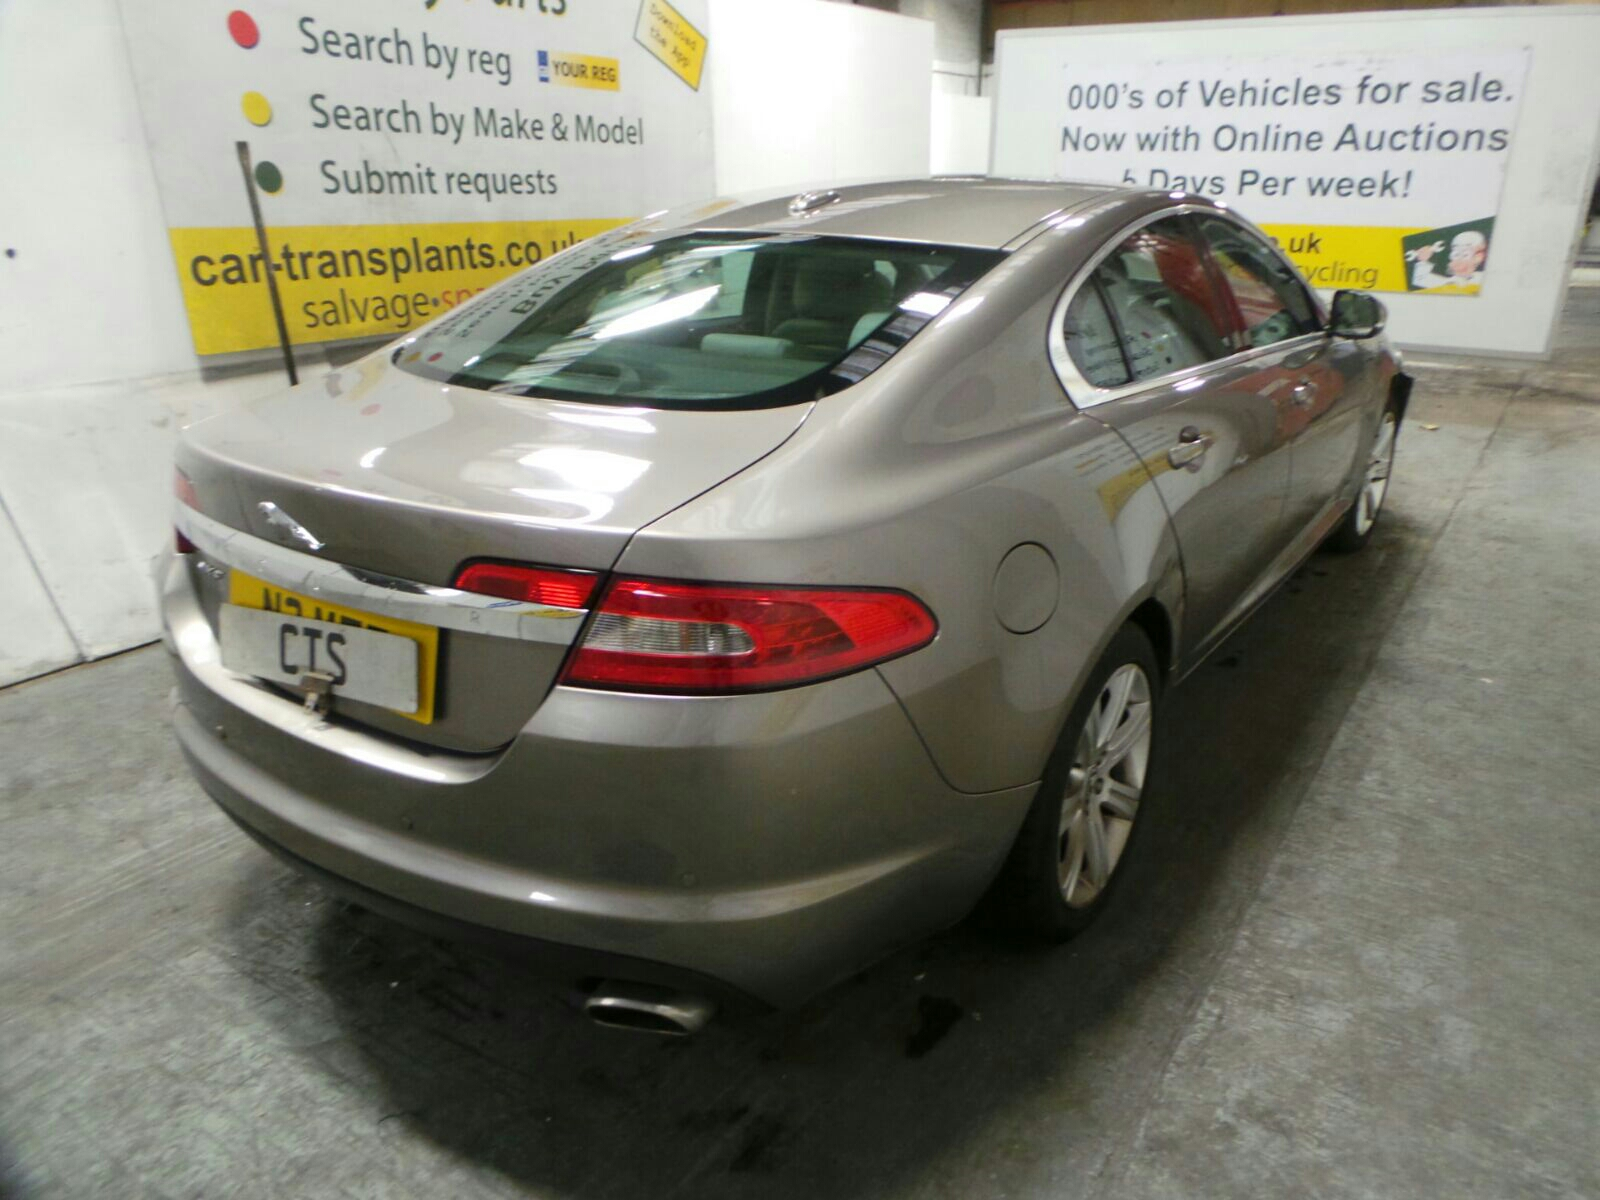 2010 jaguar xf luxury 2993cc rear parts diesel automatic 6 speed 4 6 publicscrutiny Image collections